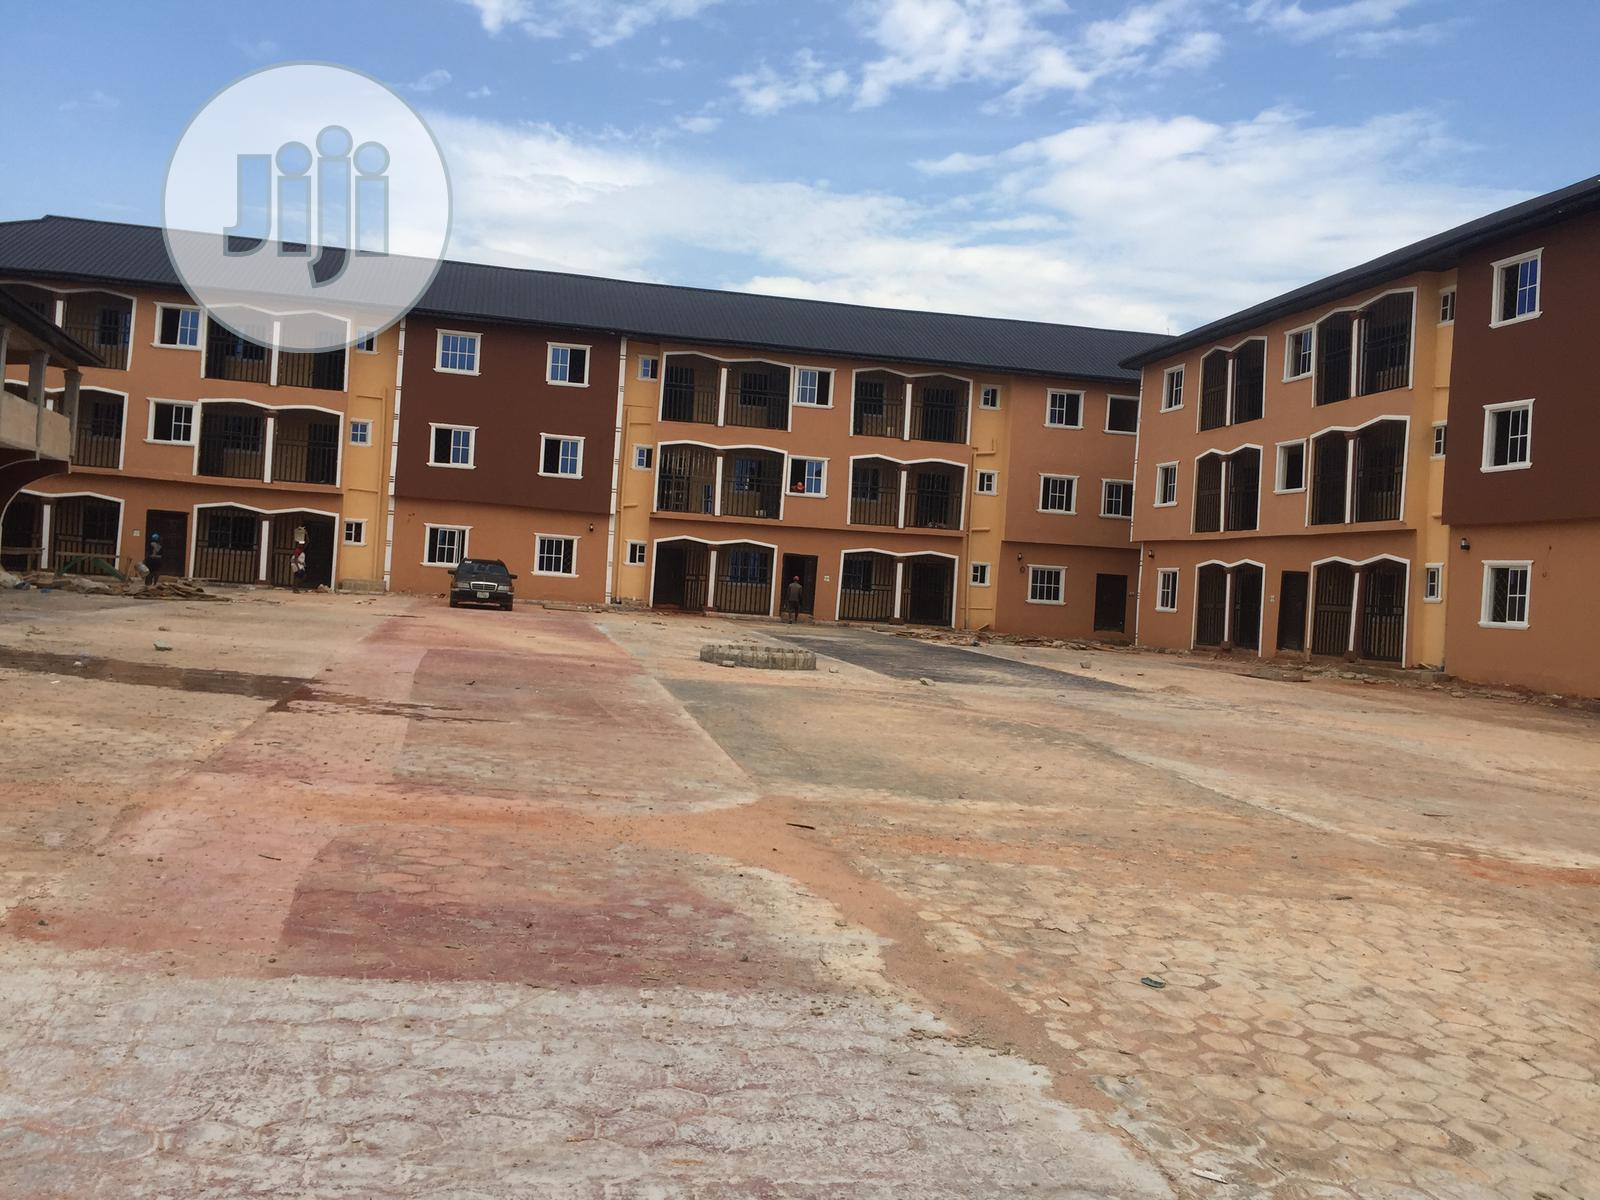 2 Bedrooms Flats And Bed Sitters | Houses & Apartments For Rent for sale in Benin City, Edo State, Nigeria